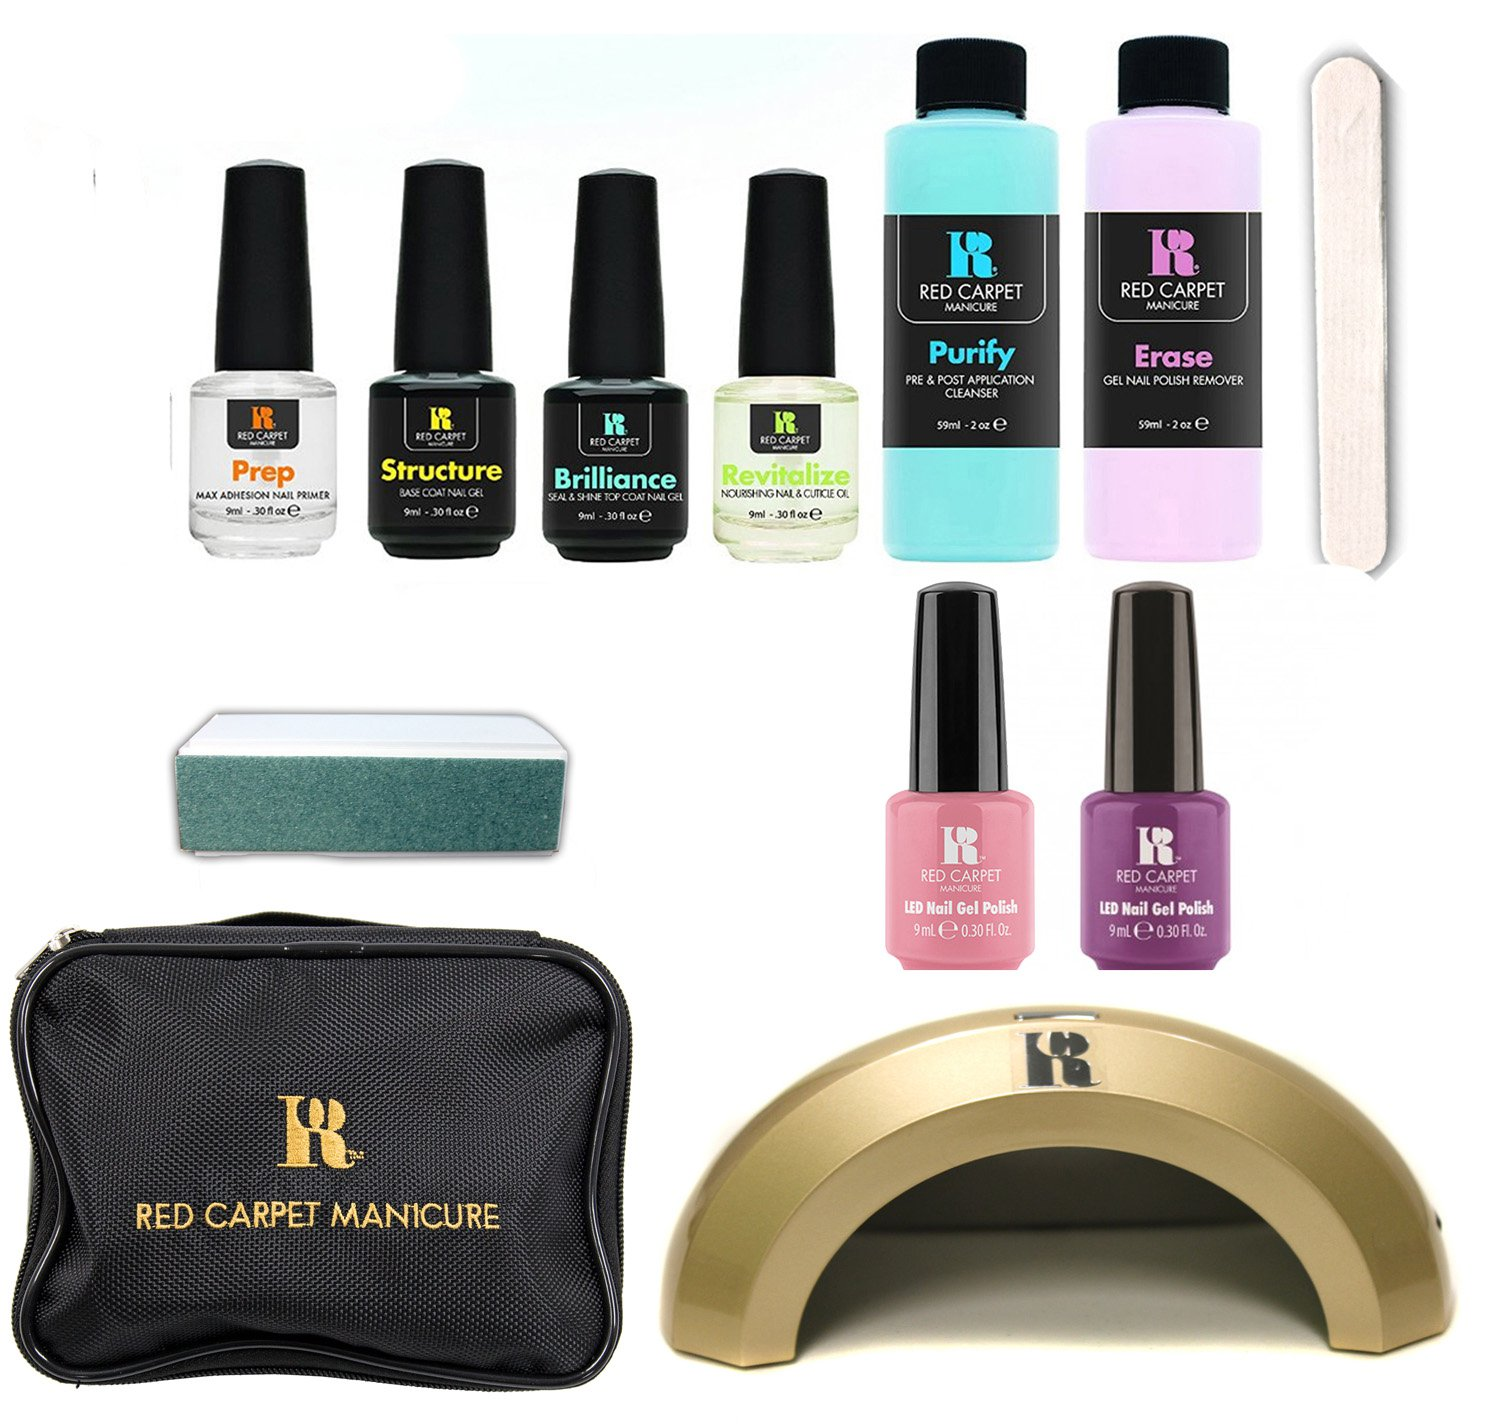 New Red Carpet Manicure LED Gel Nail Polish Color Kit Starter Set + Travel Bag